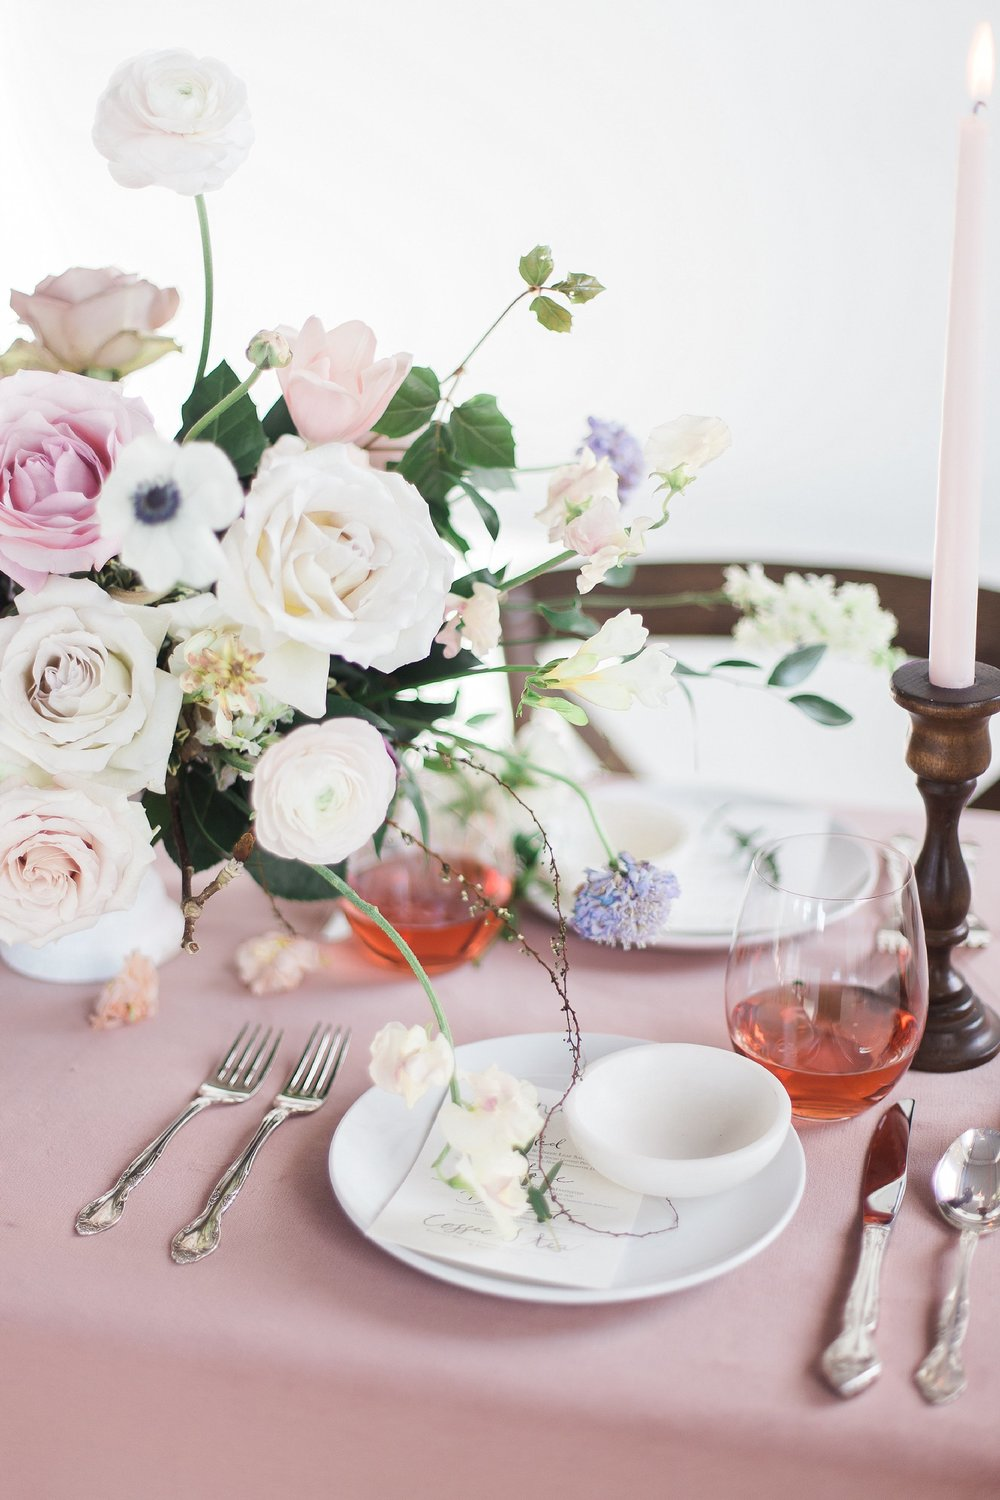 Winnipeg Wedding Photographer Keila Marie Photography | Academy Florist styled shoot | Spring Blush Pink Wedding Theme Table